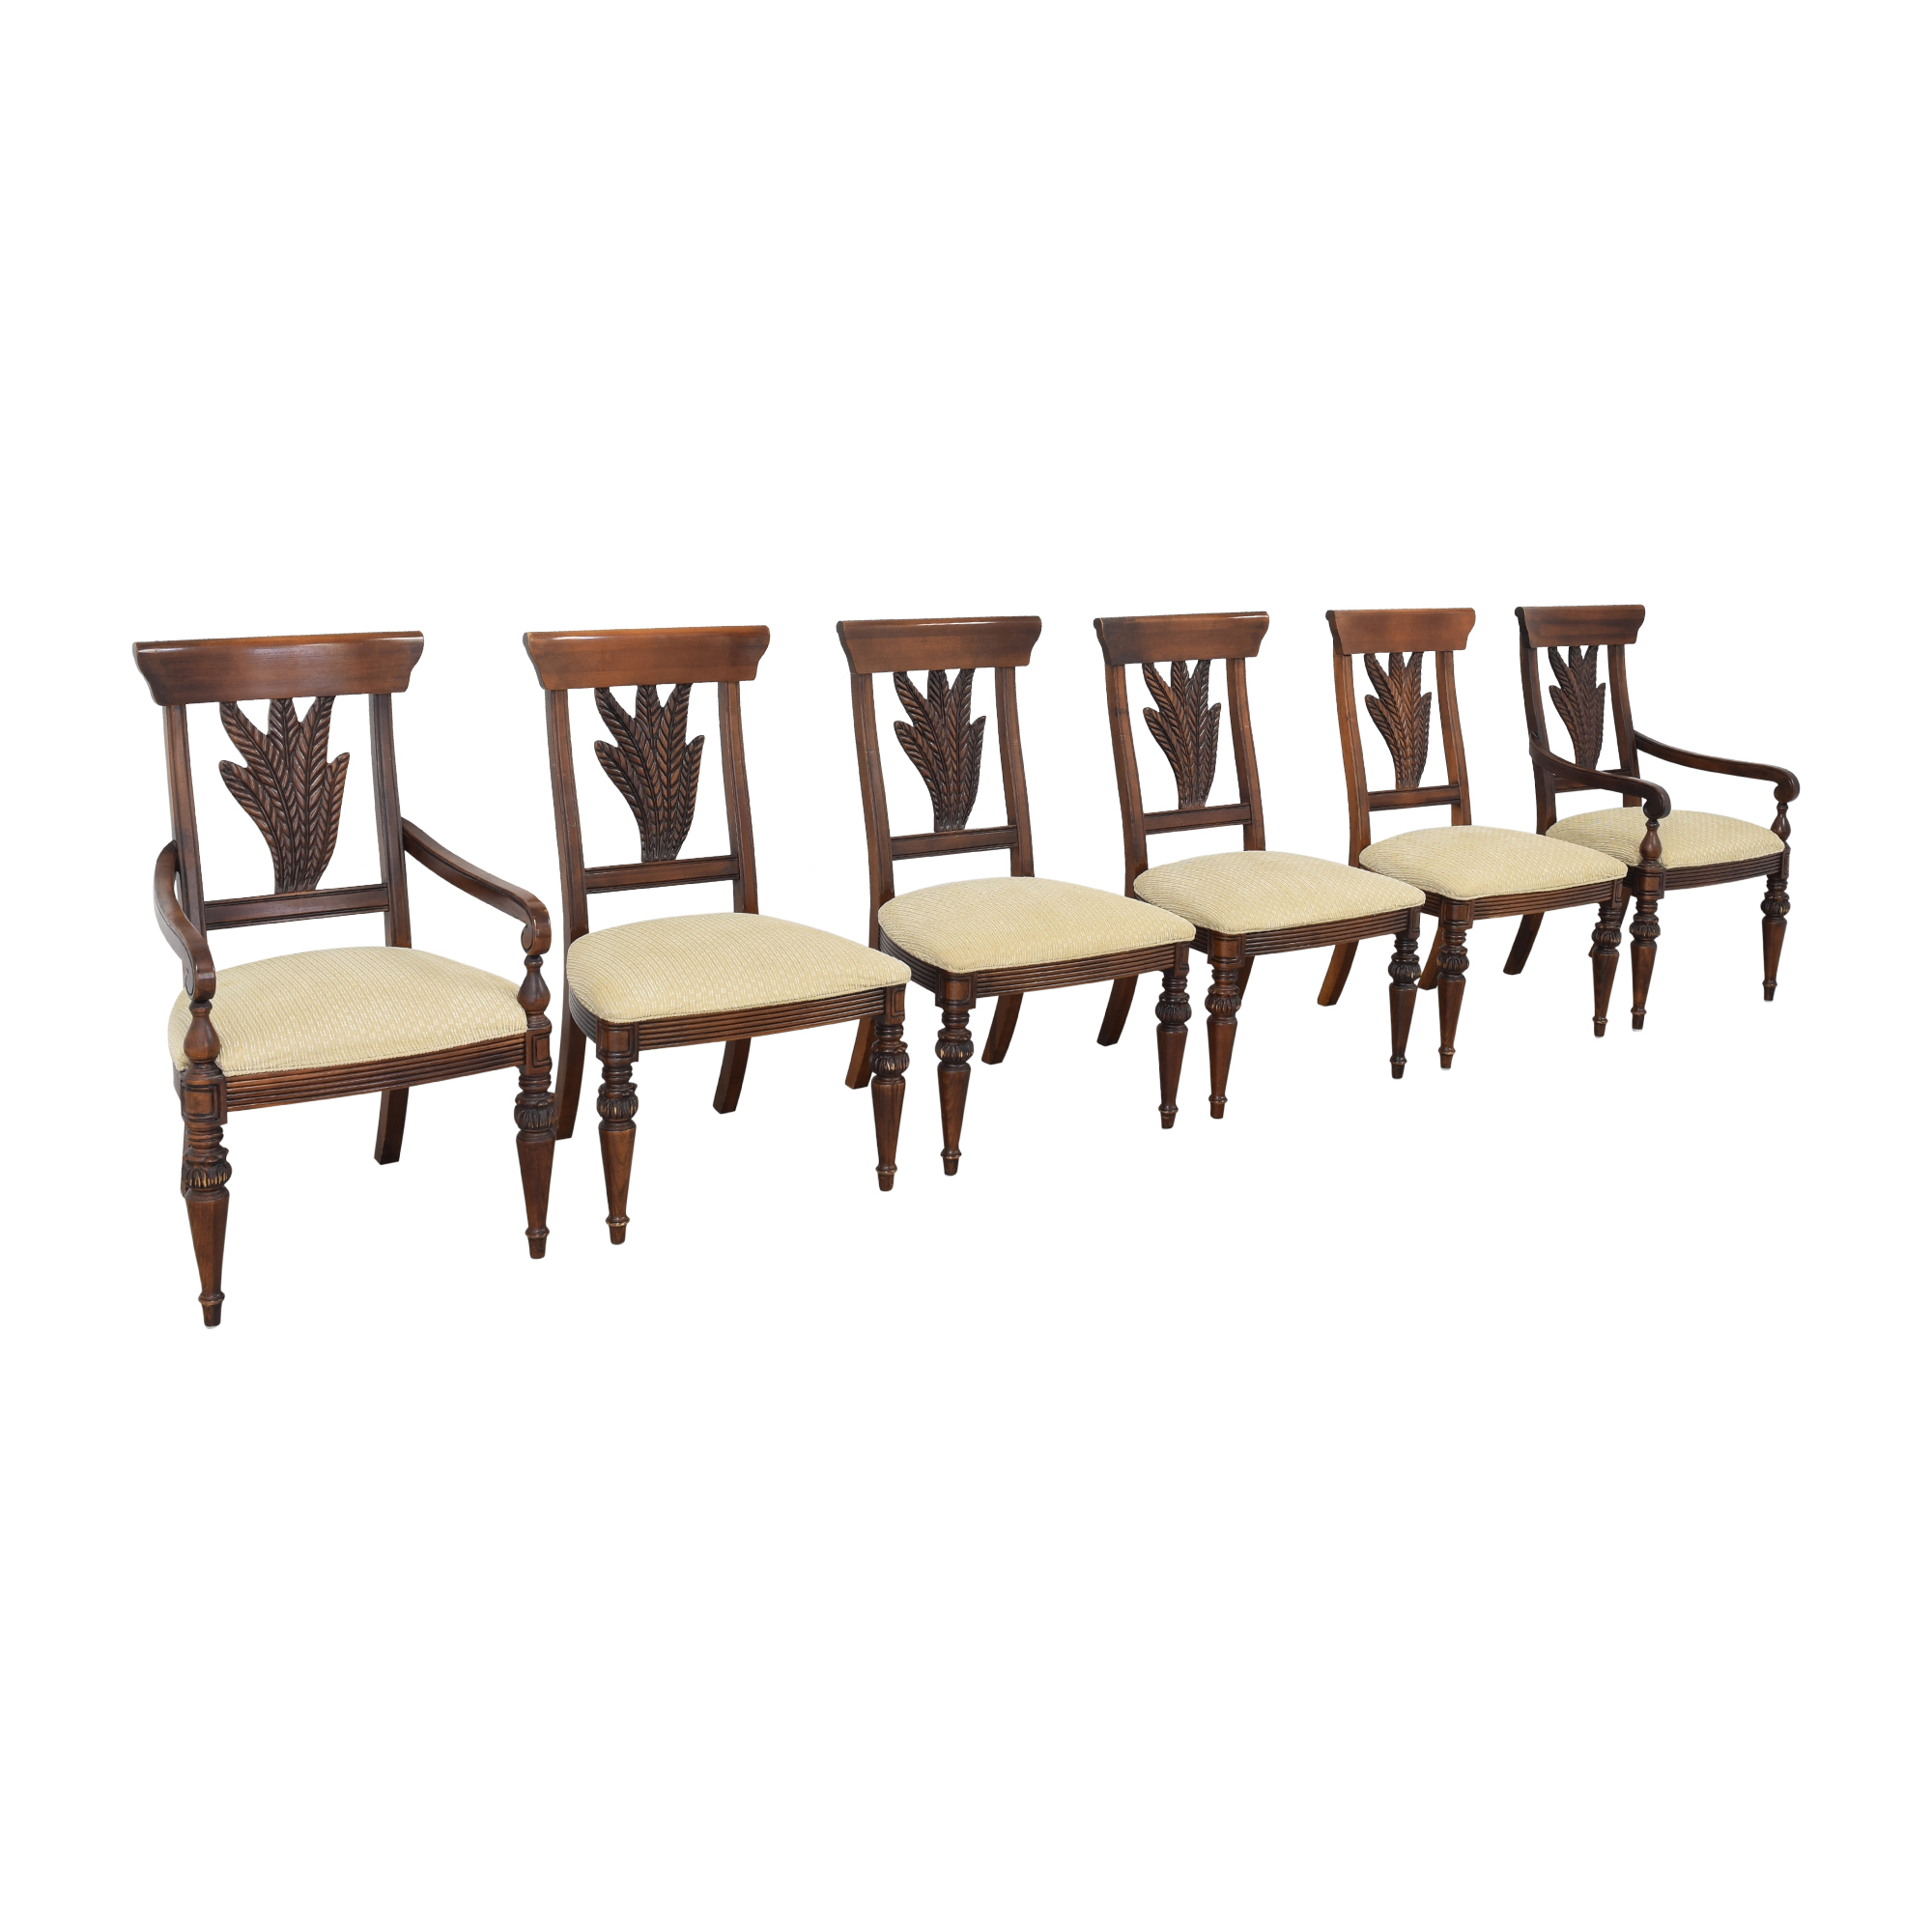 Thomasville Thomasville Ernest Hemingway Collection Dining Chairs pa